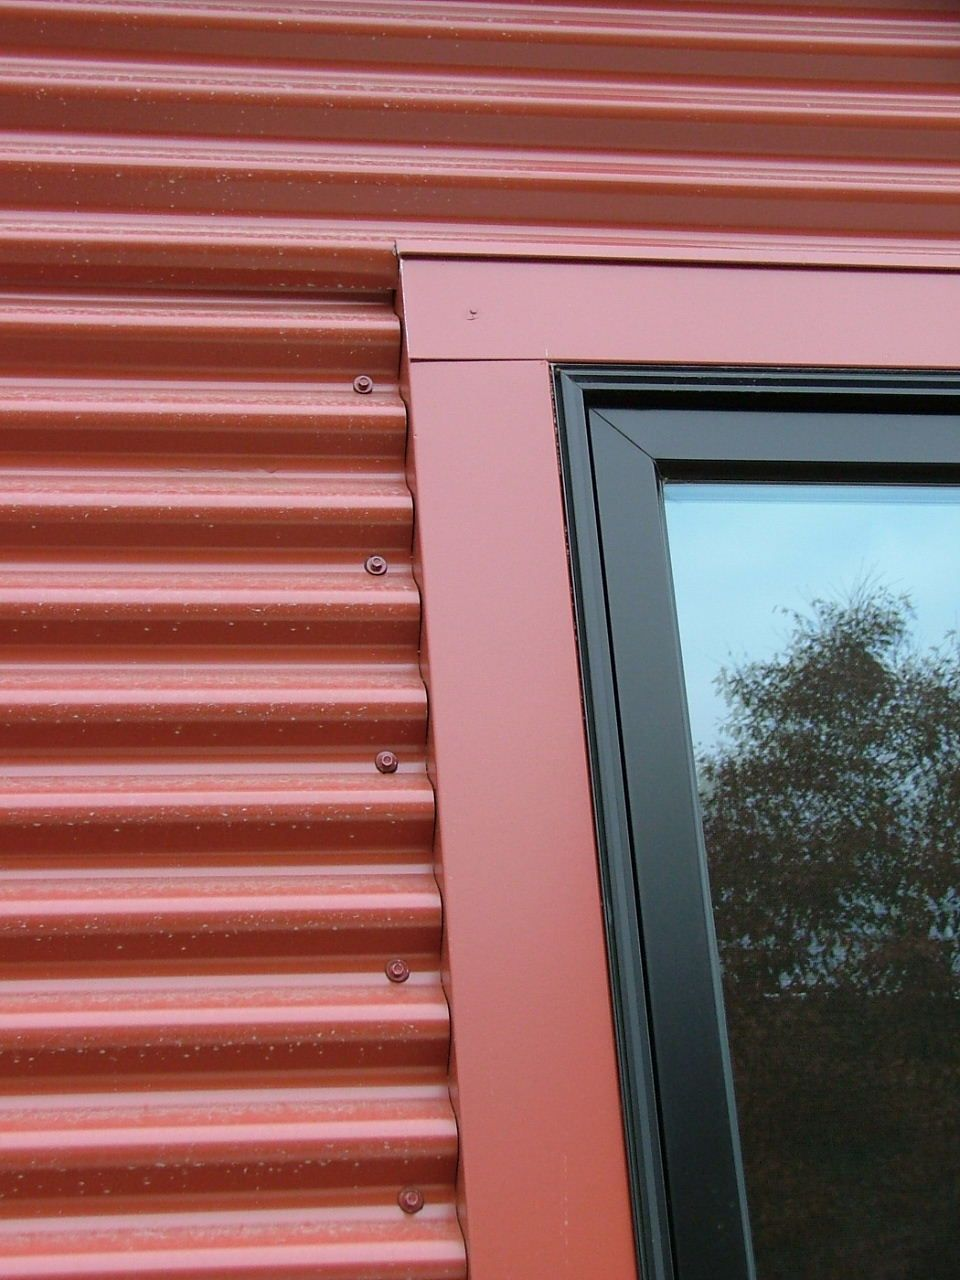 Detail with window frame corrugated steel siding